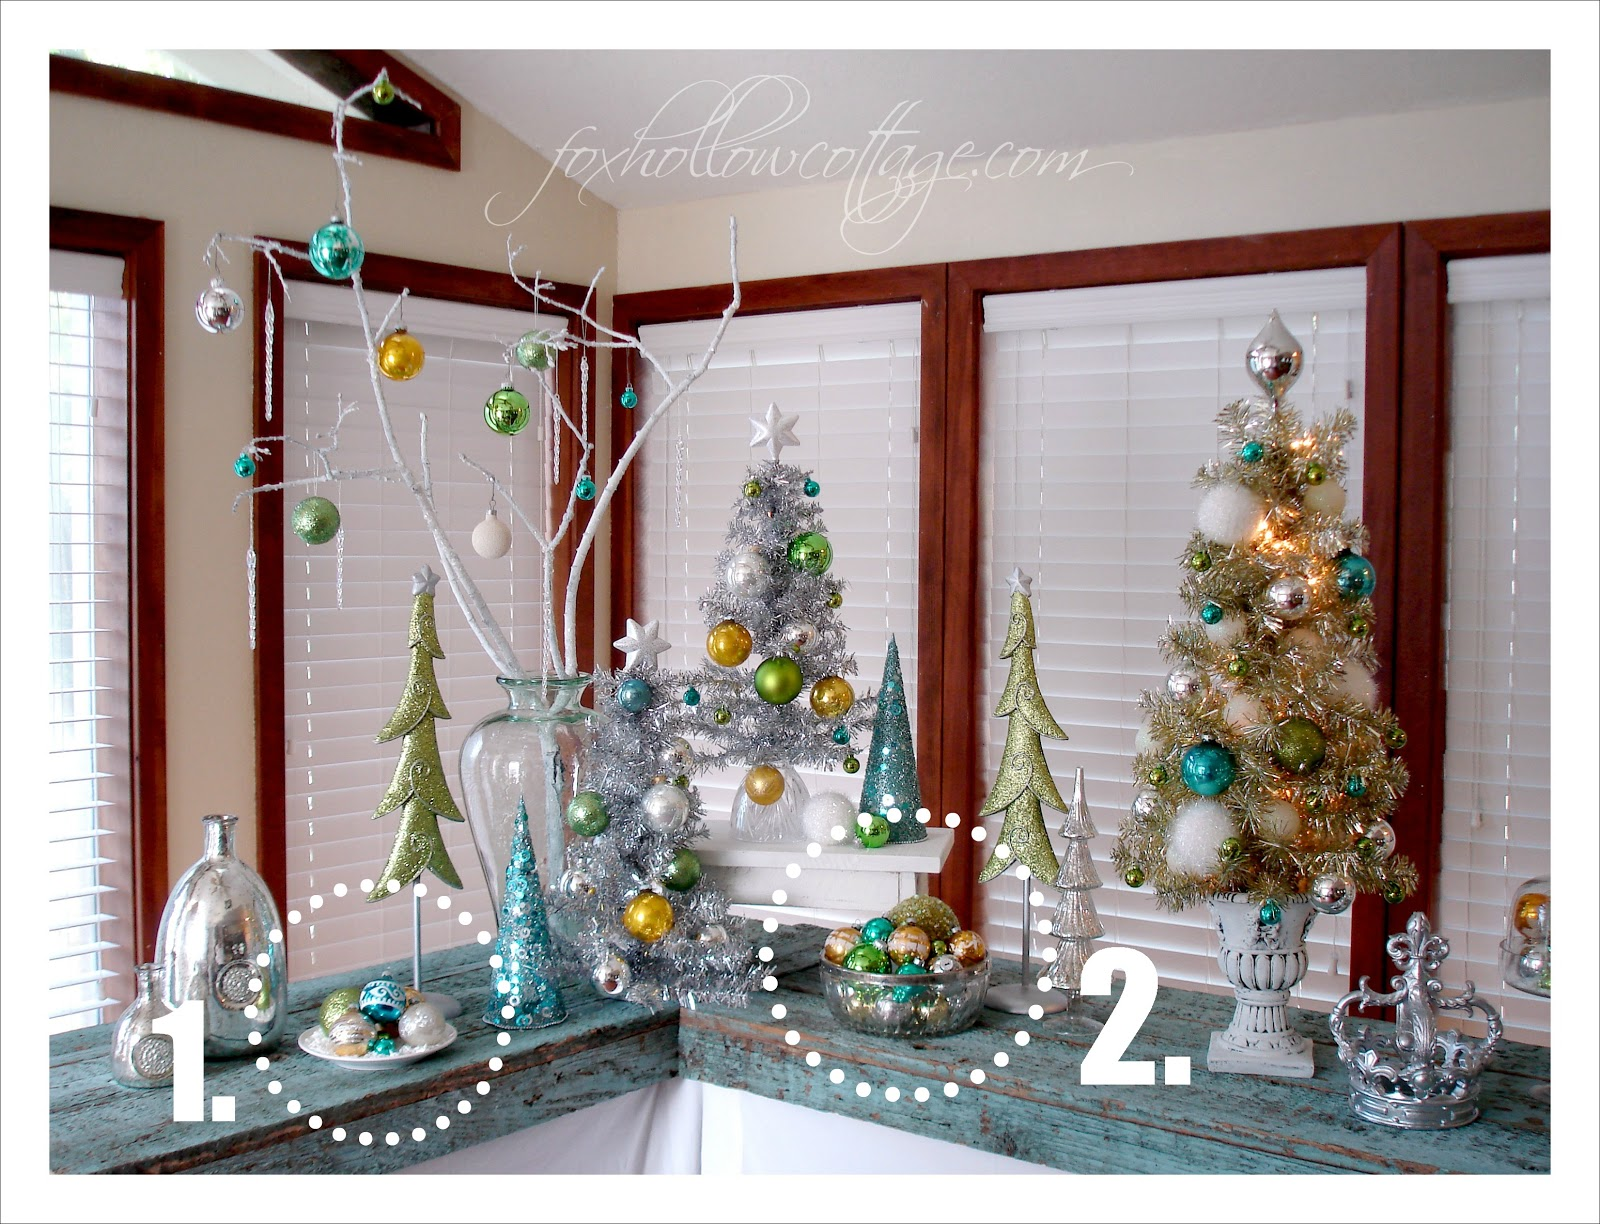 10 quick ideas for decorating with christmas ornaments - Decorate Your Home For Christmas Cheap